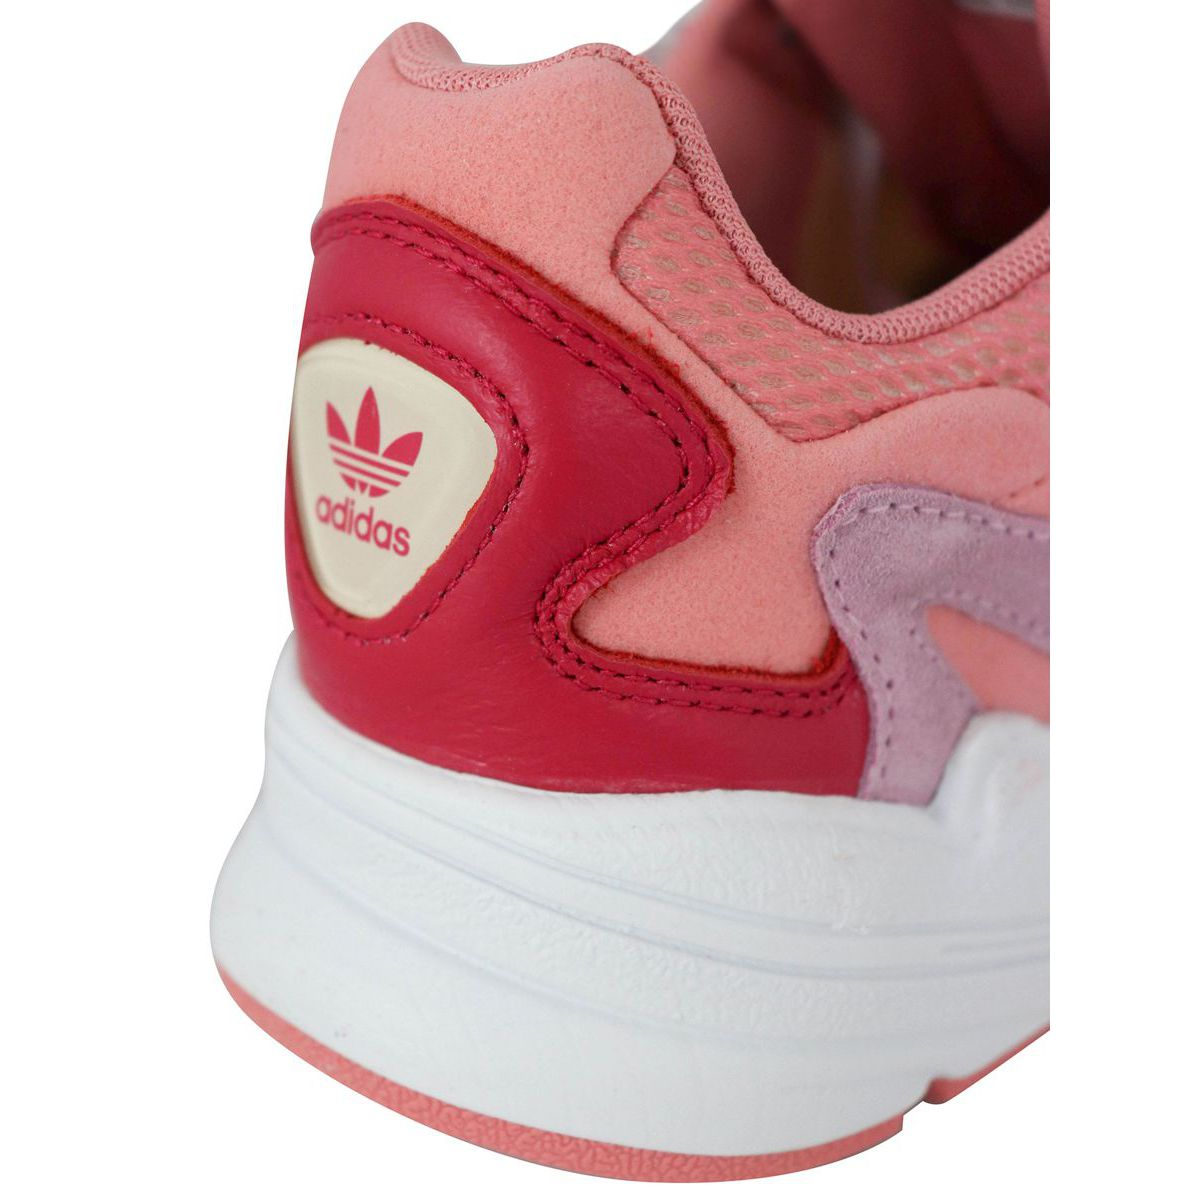 Sneakers EF1964 FALCON Pink Adidas